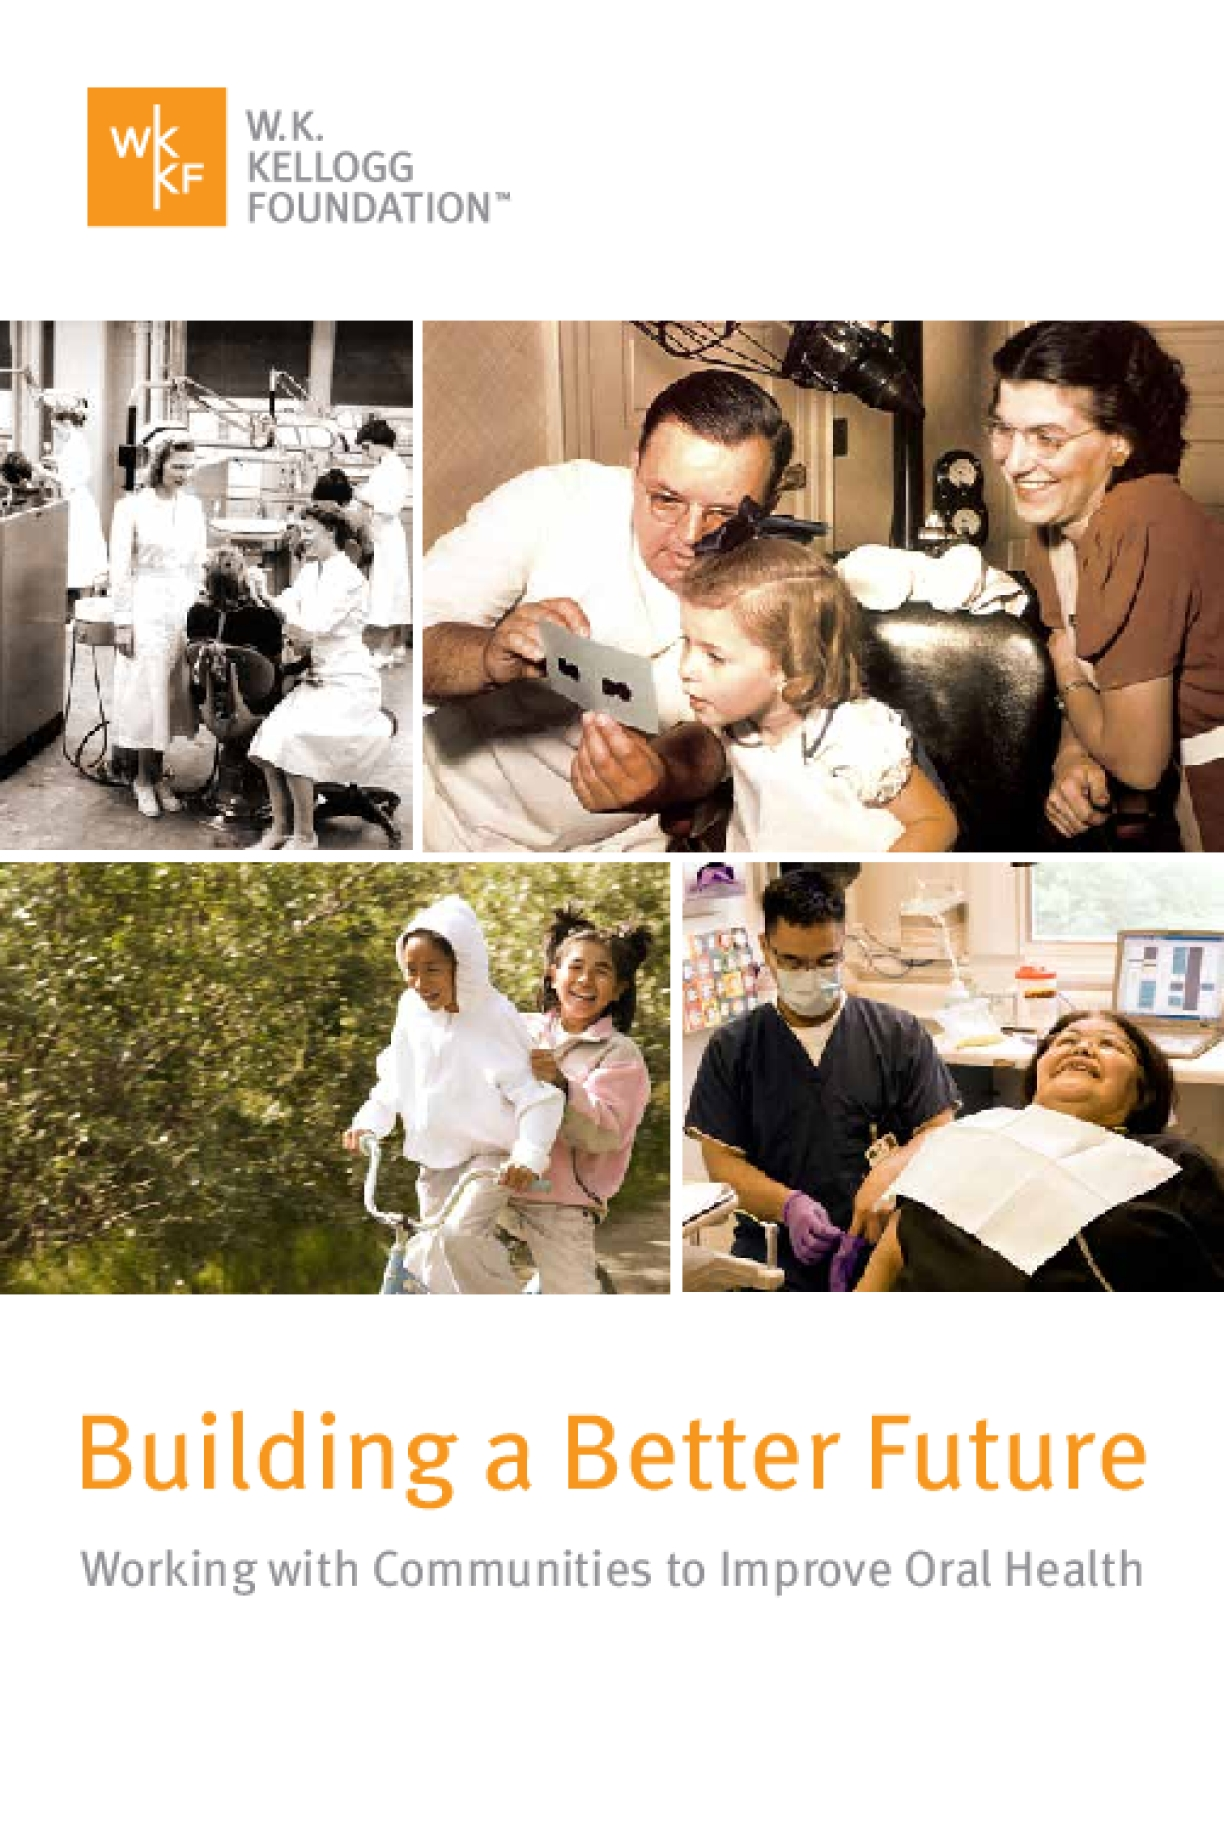 Building a Better Future: Working with Communities to Improve Oral Health